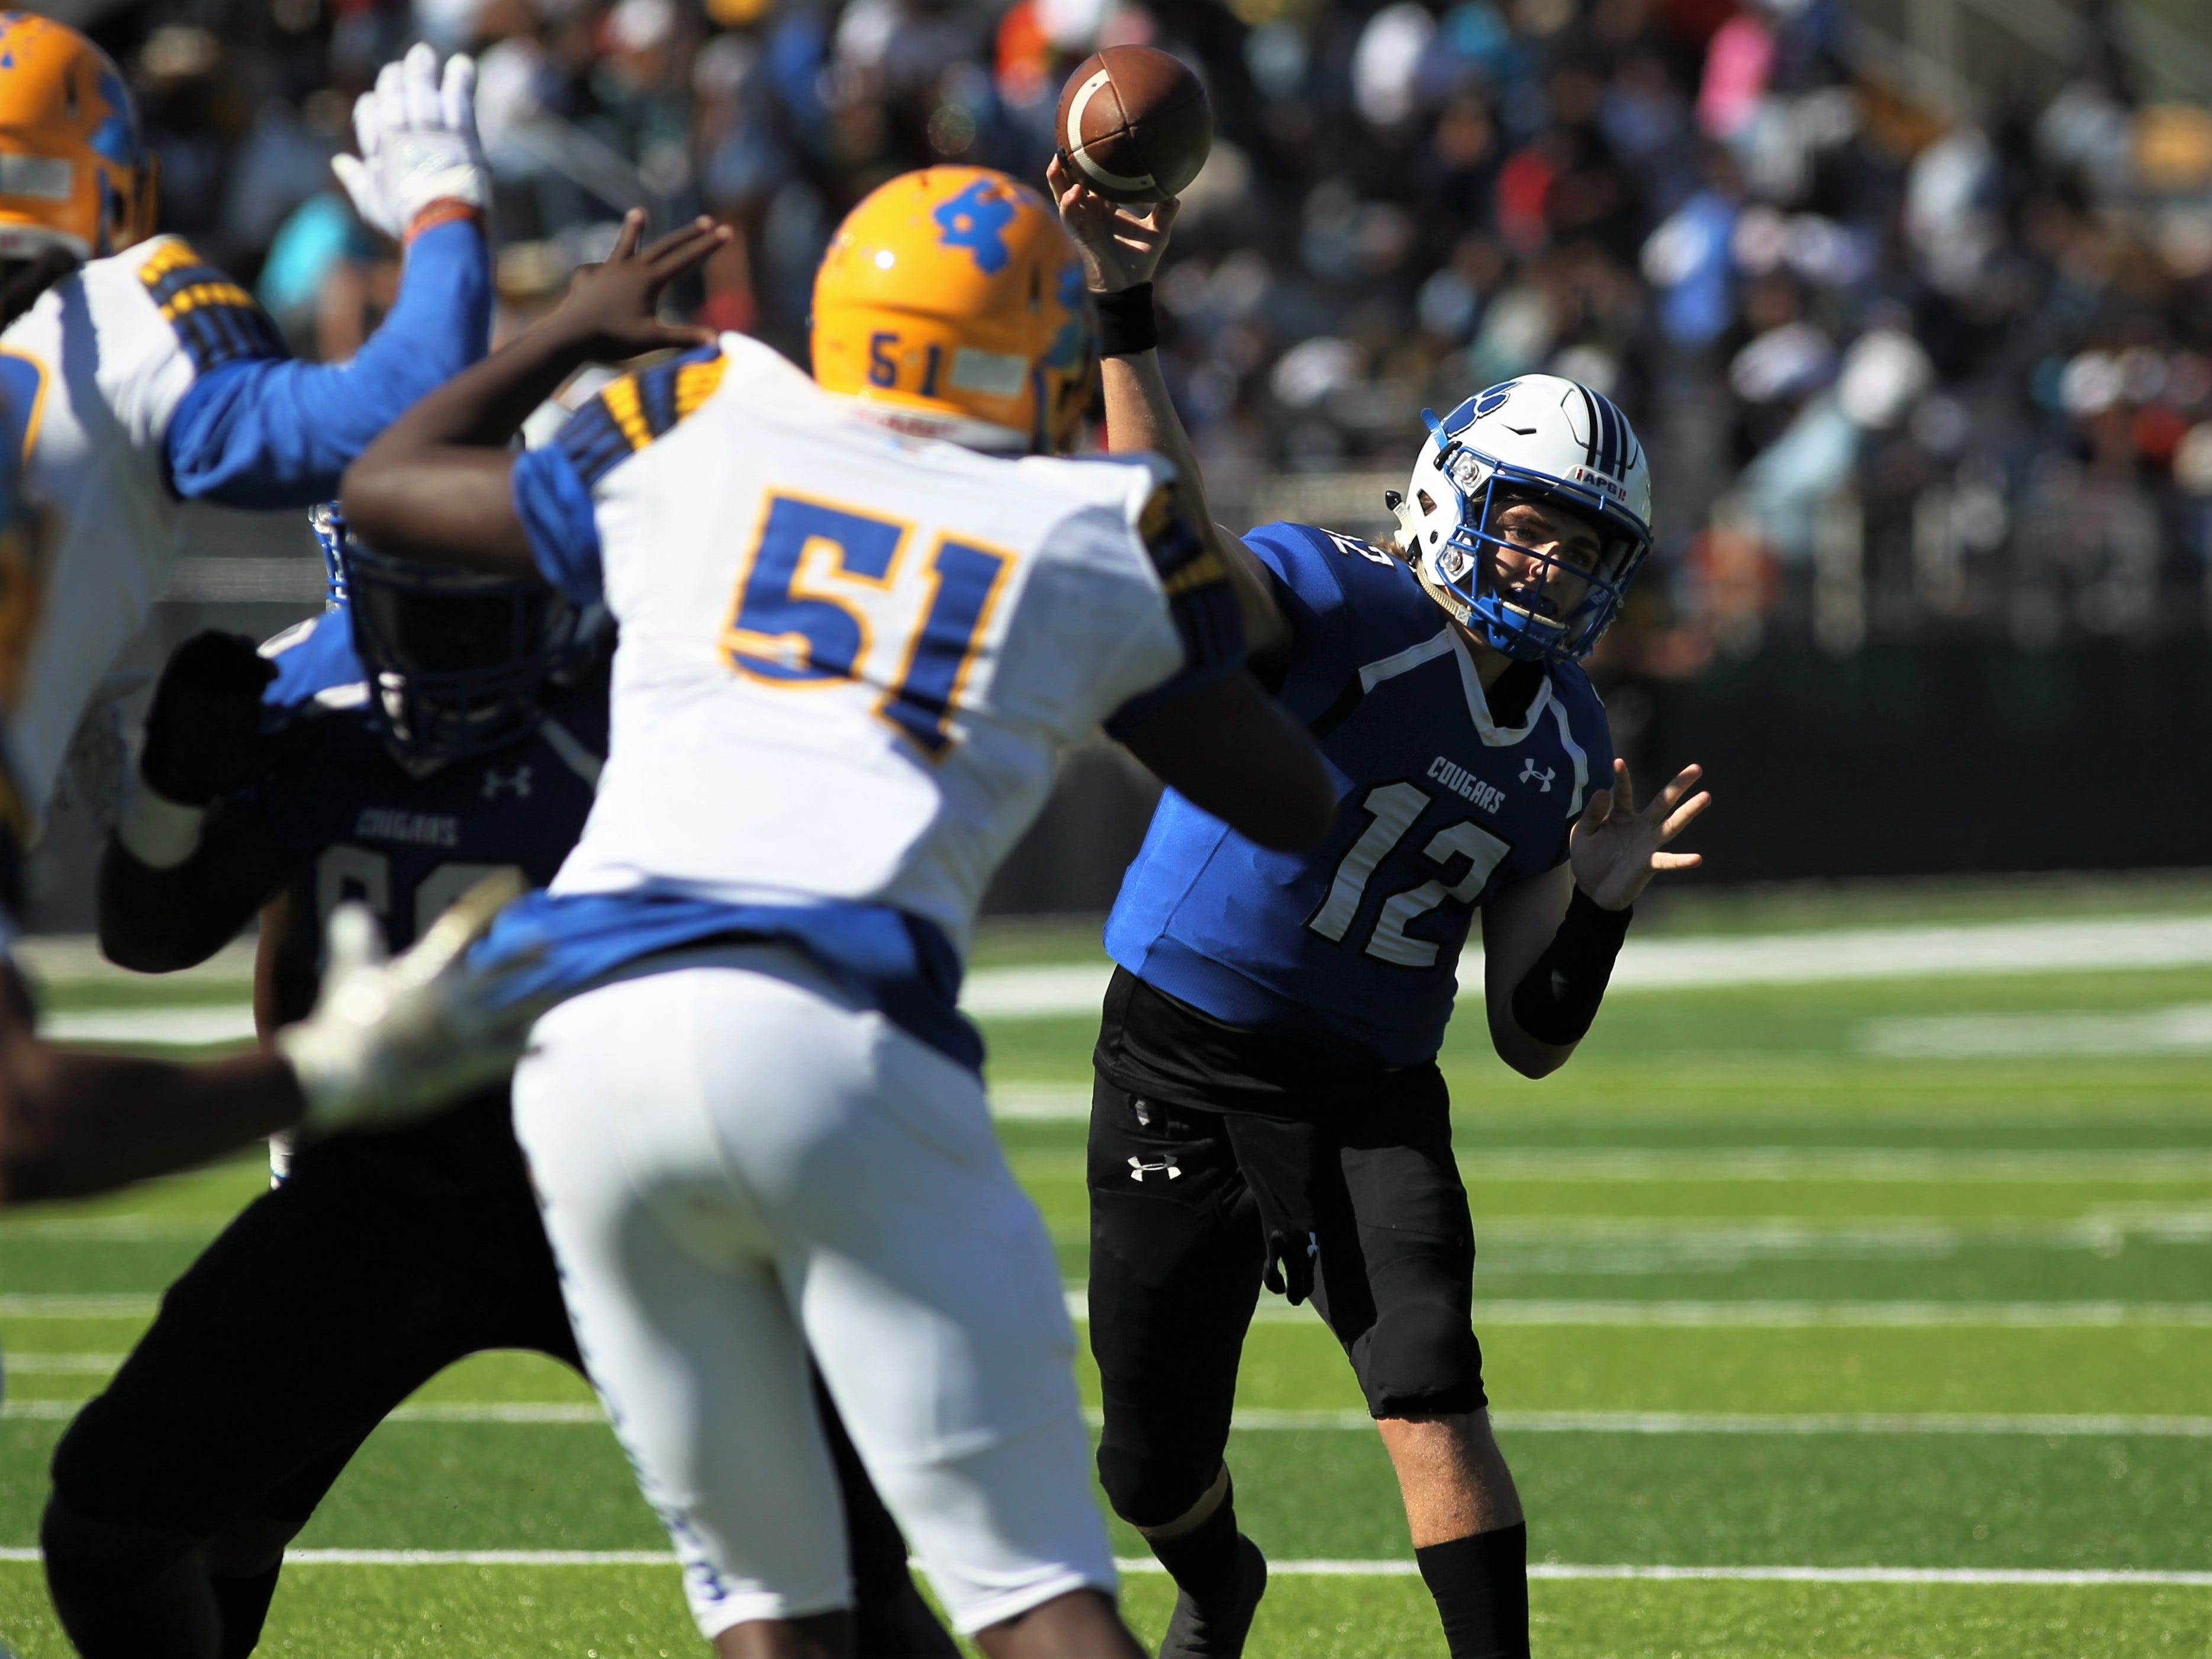 Godby quarterback Trey Fisher throws a pass against Rickards.